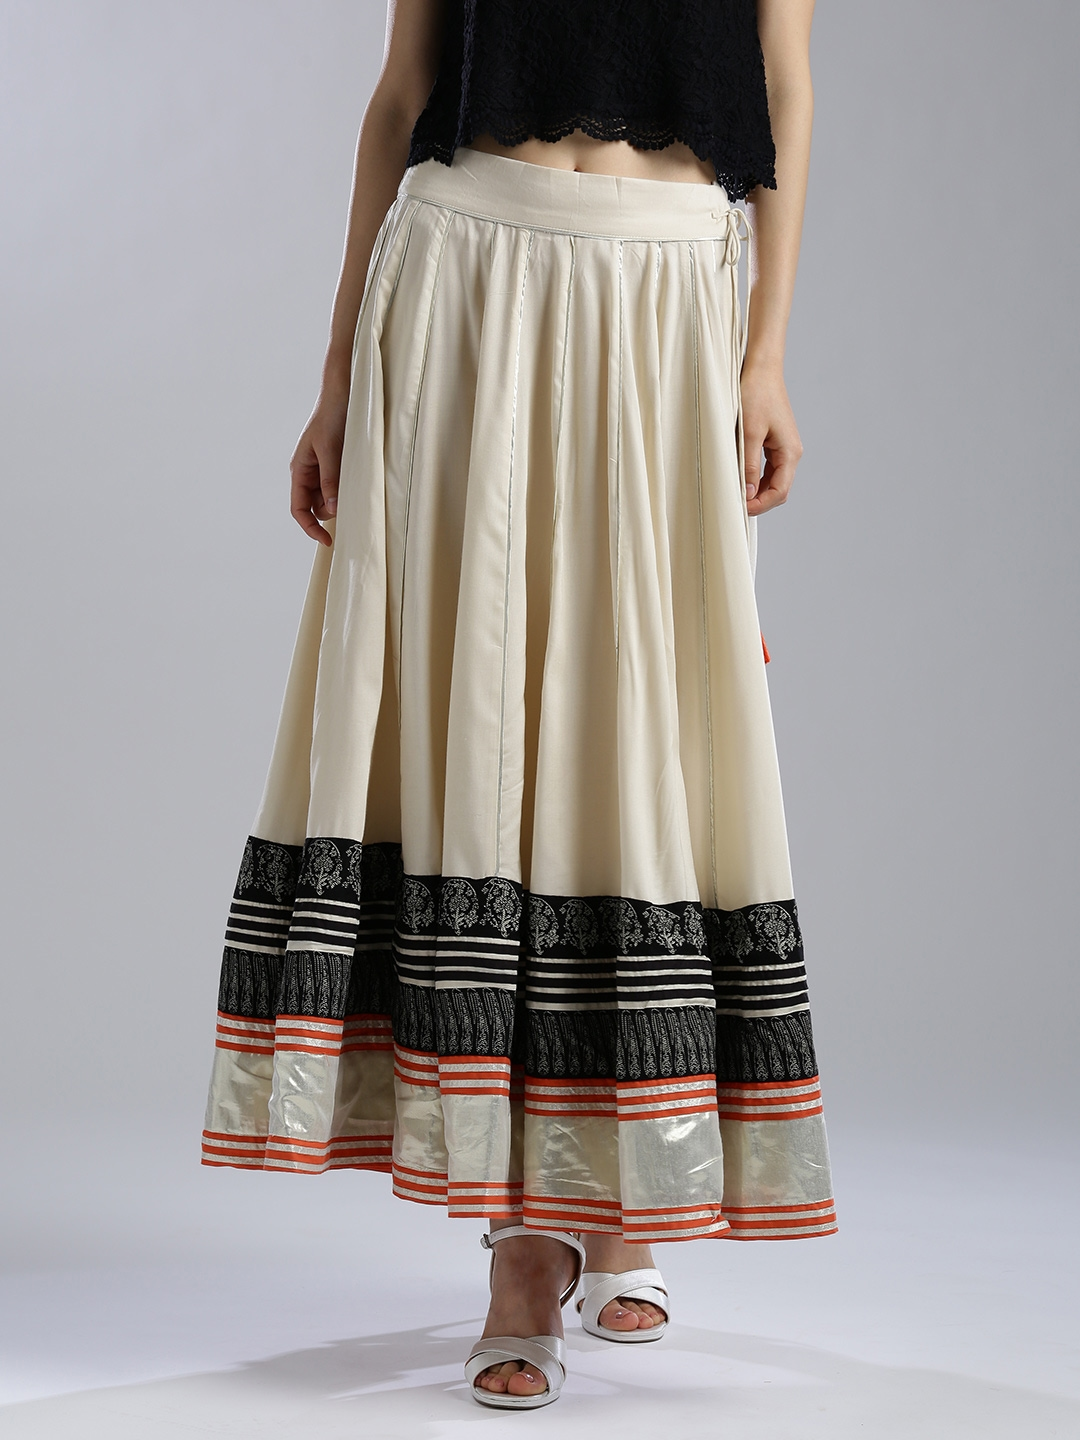 fbd861c6c1 Buy W Beige Printed Detail Maxi Flared Skirt - Skirts for Women ...